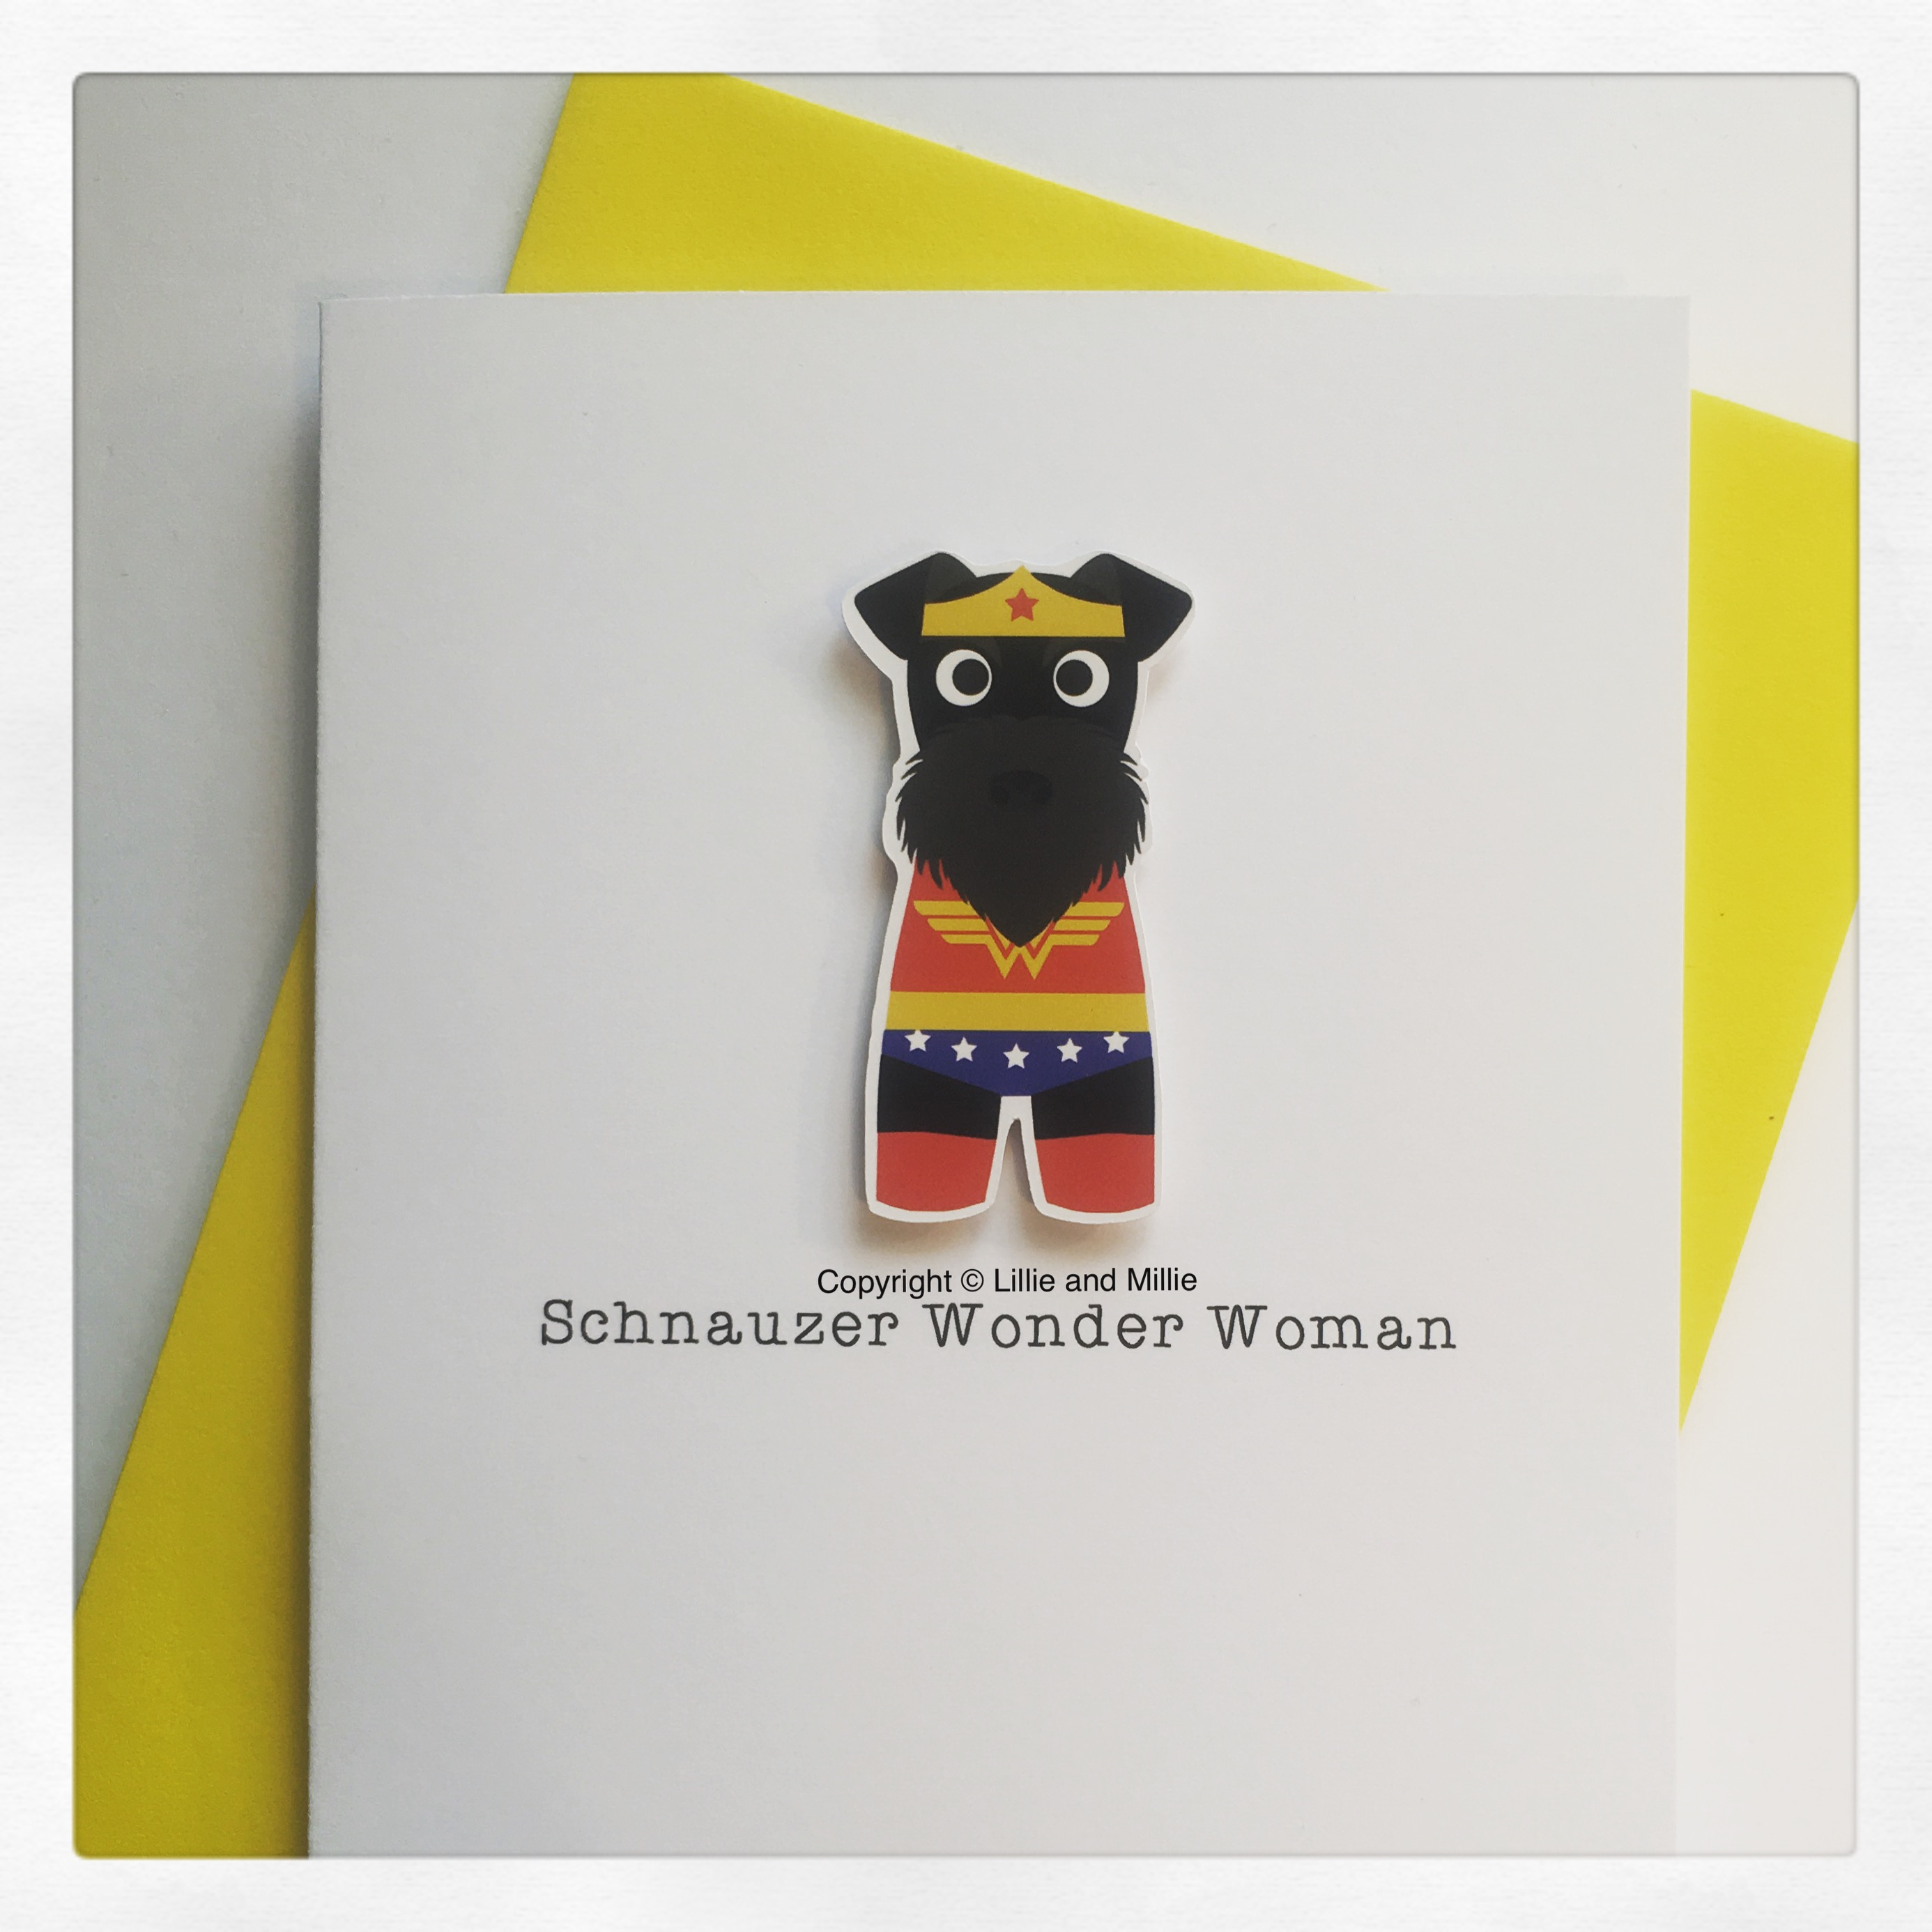 Cute and Cuddly Black Schnauzer Wonder Woman Card